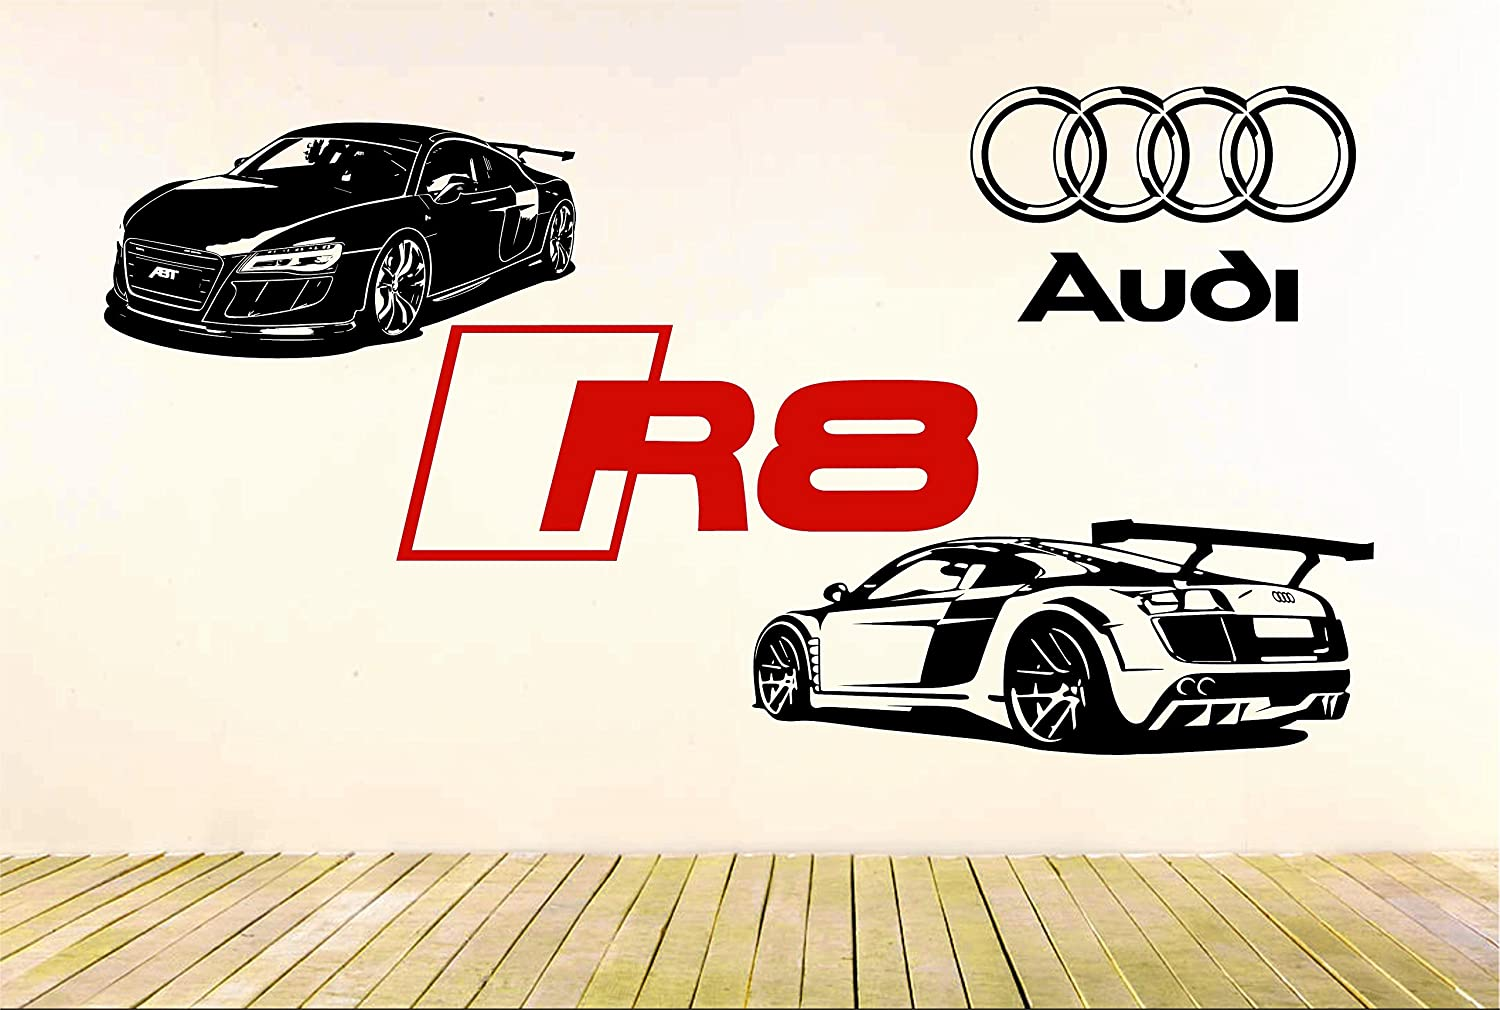 Jcm custom r8 gt racing super sport car removable wall vinyl decals stickers 2 cars package amazon com